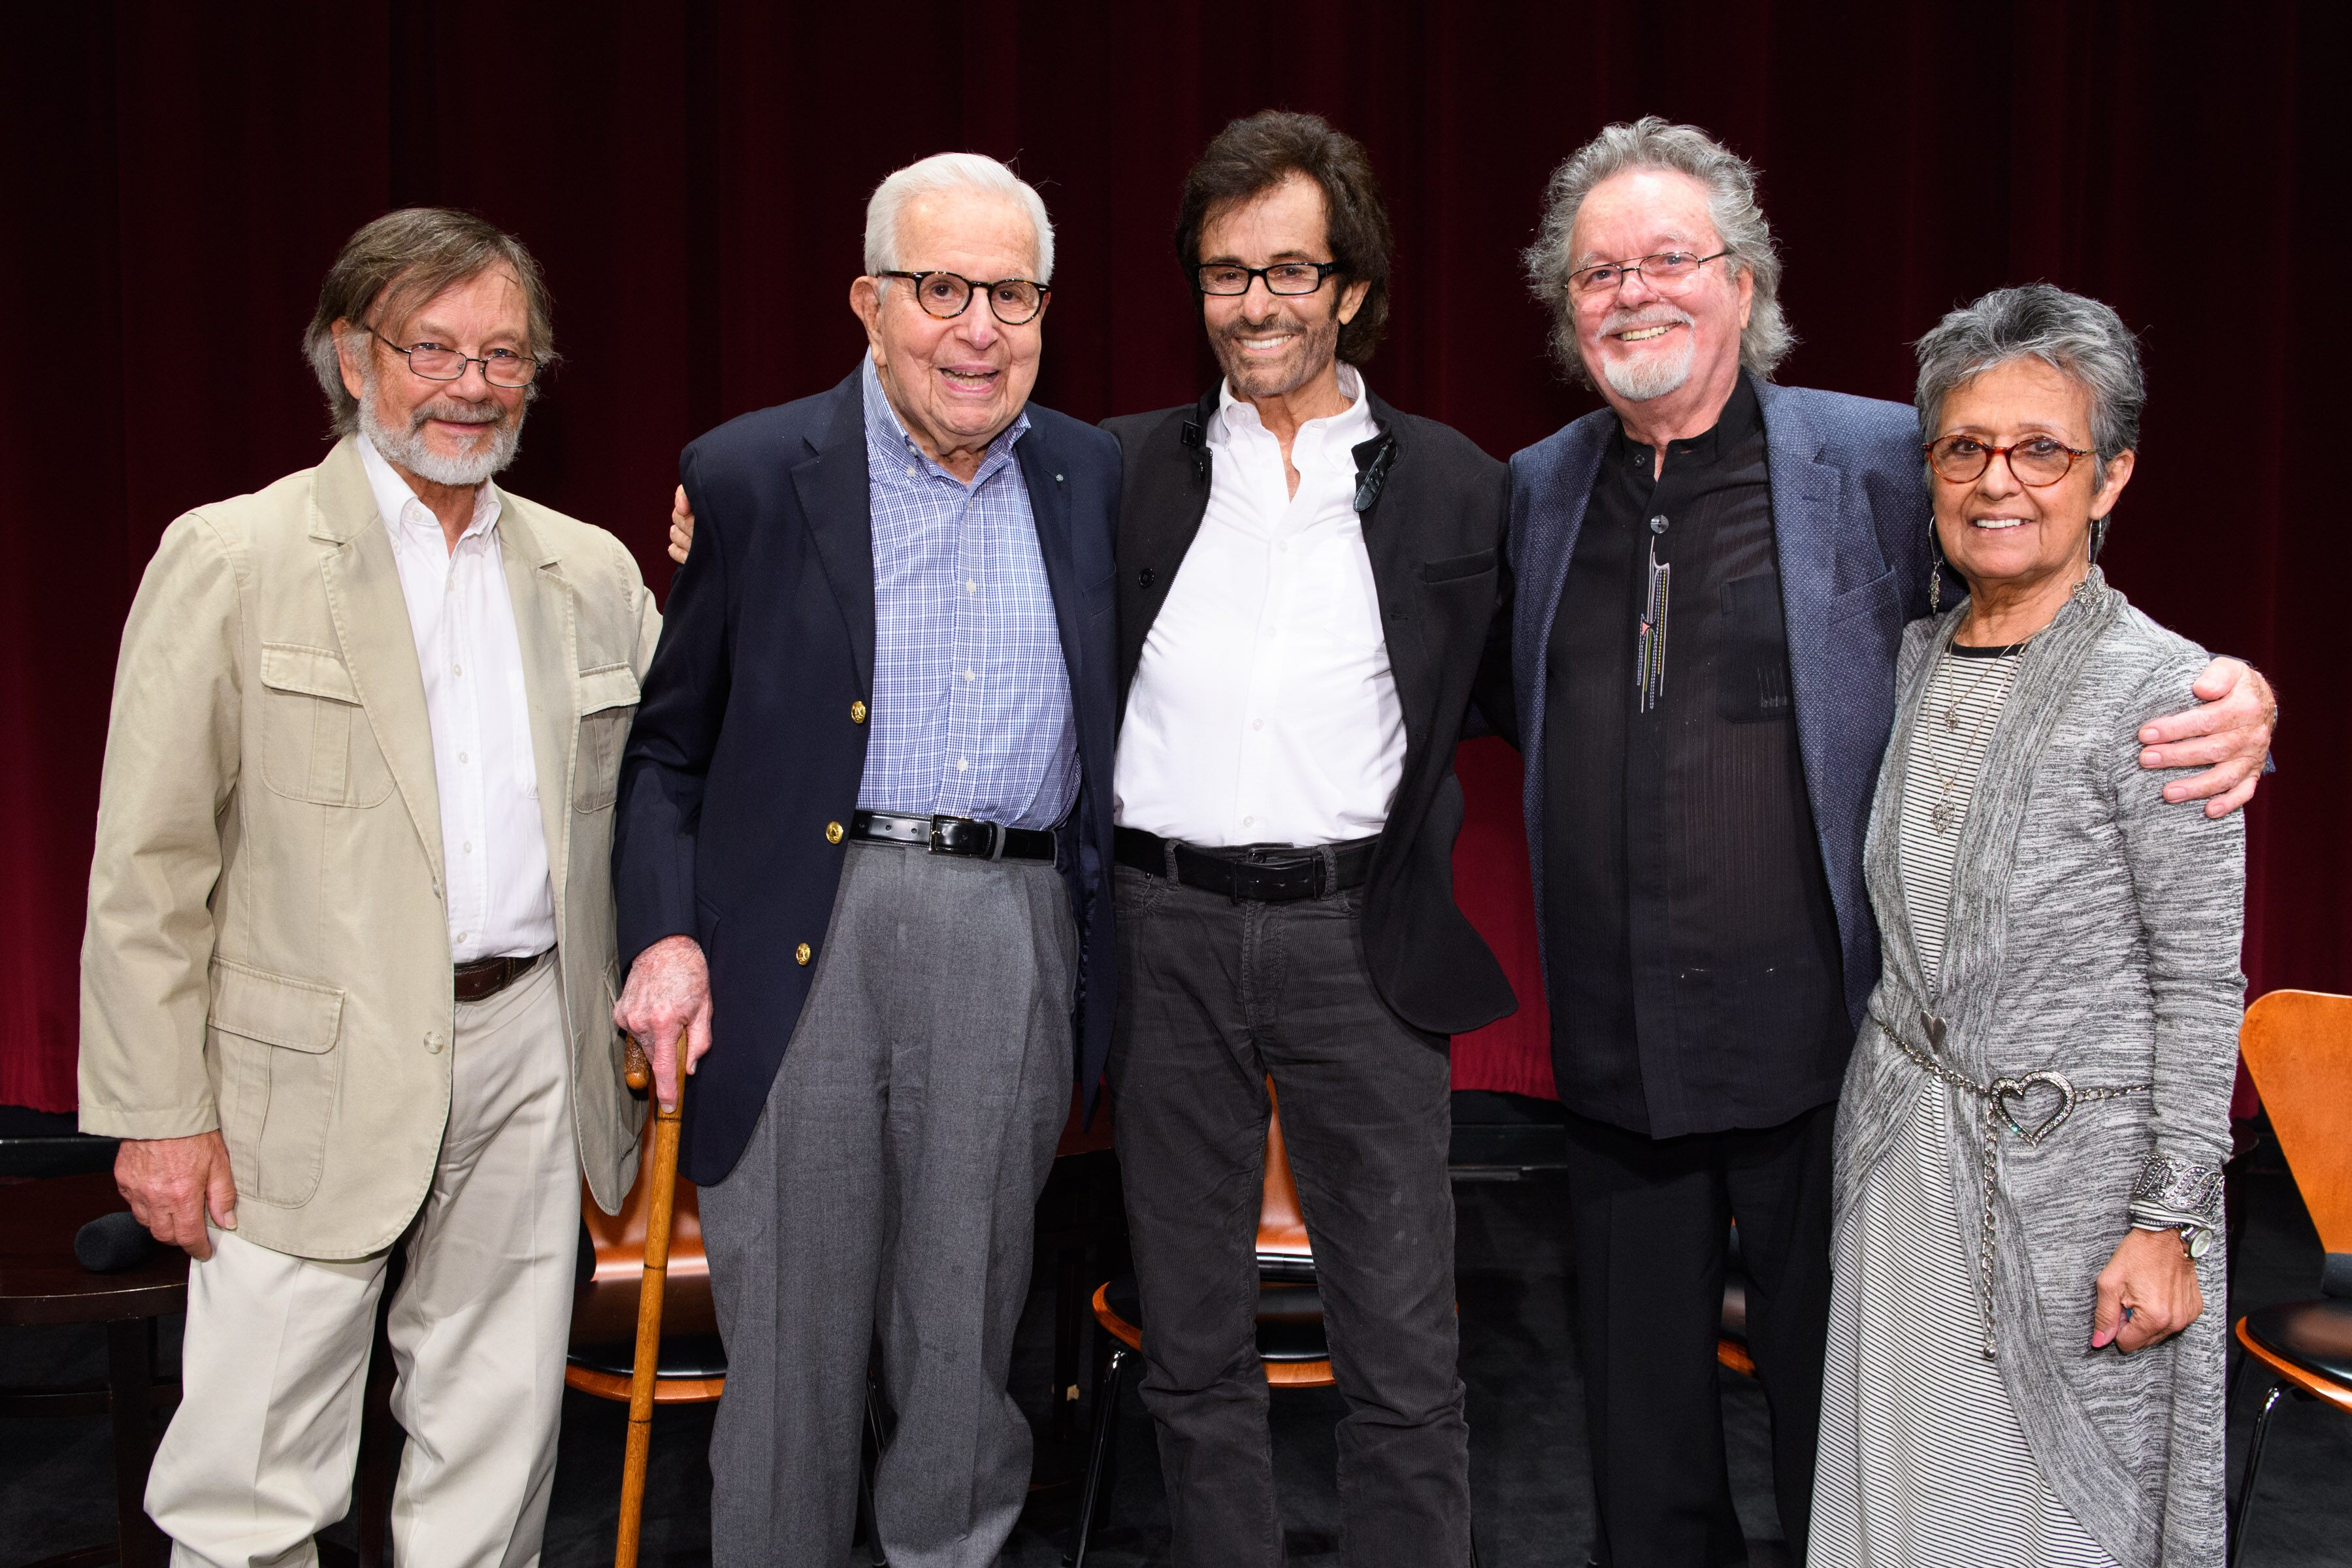 Pictured (left to right): Robert Banas, Walter Mirisch, George Chakiris, Russ Tamblyn and Maria Jimenez Henley.